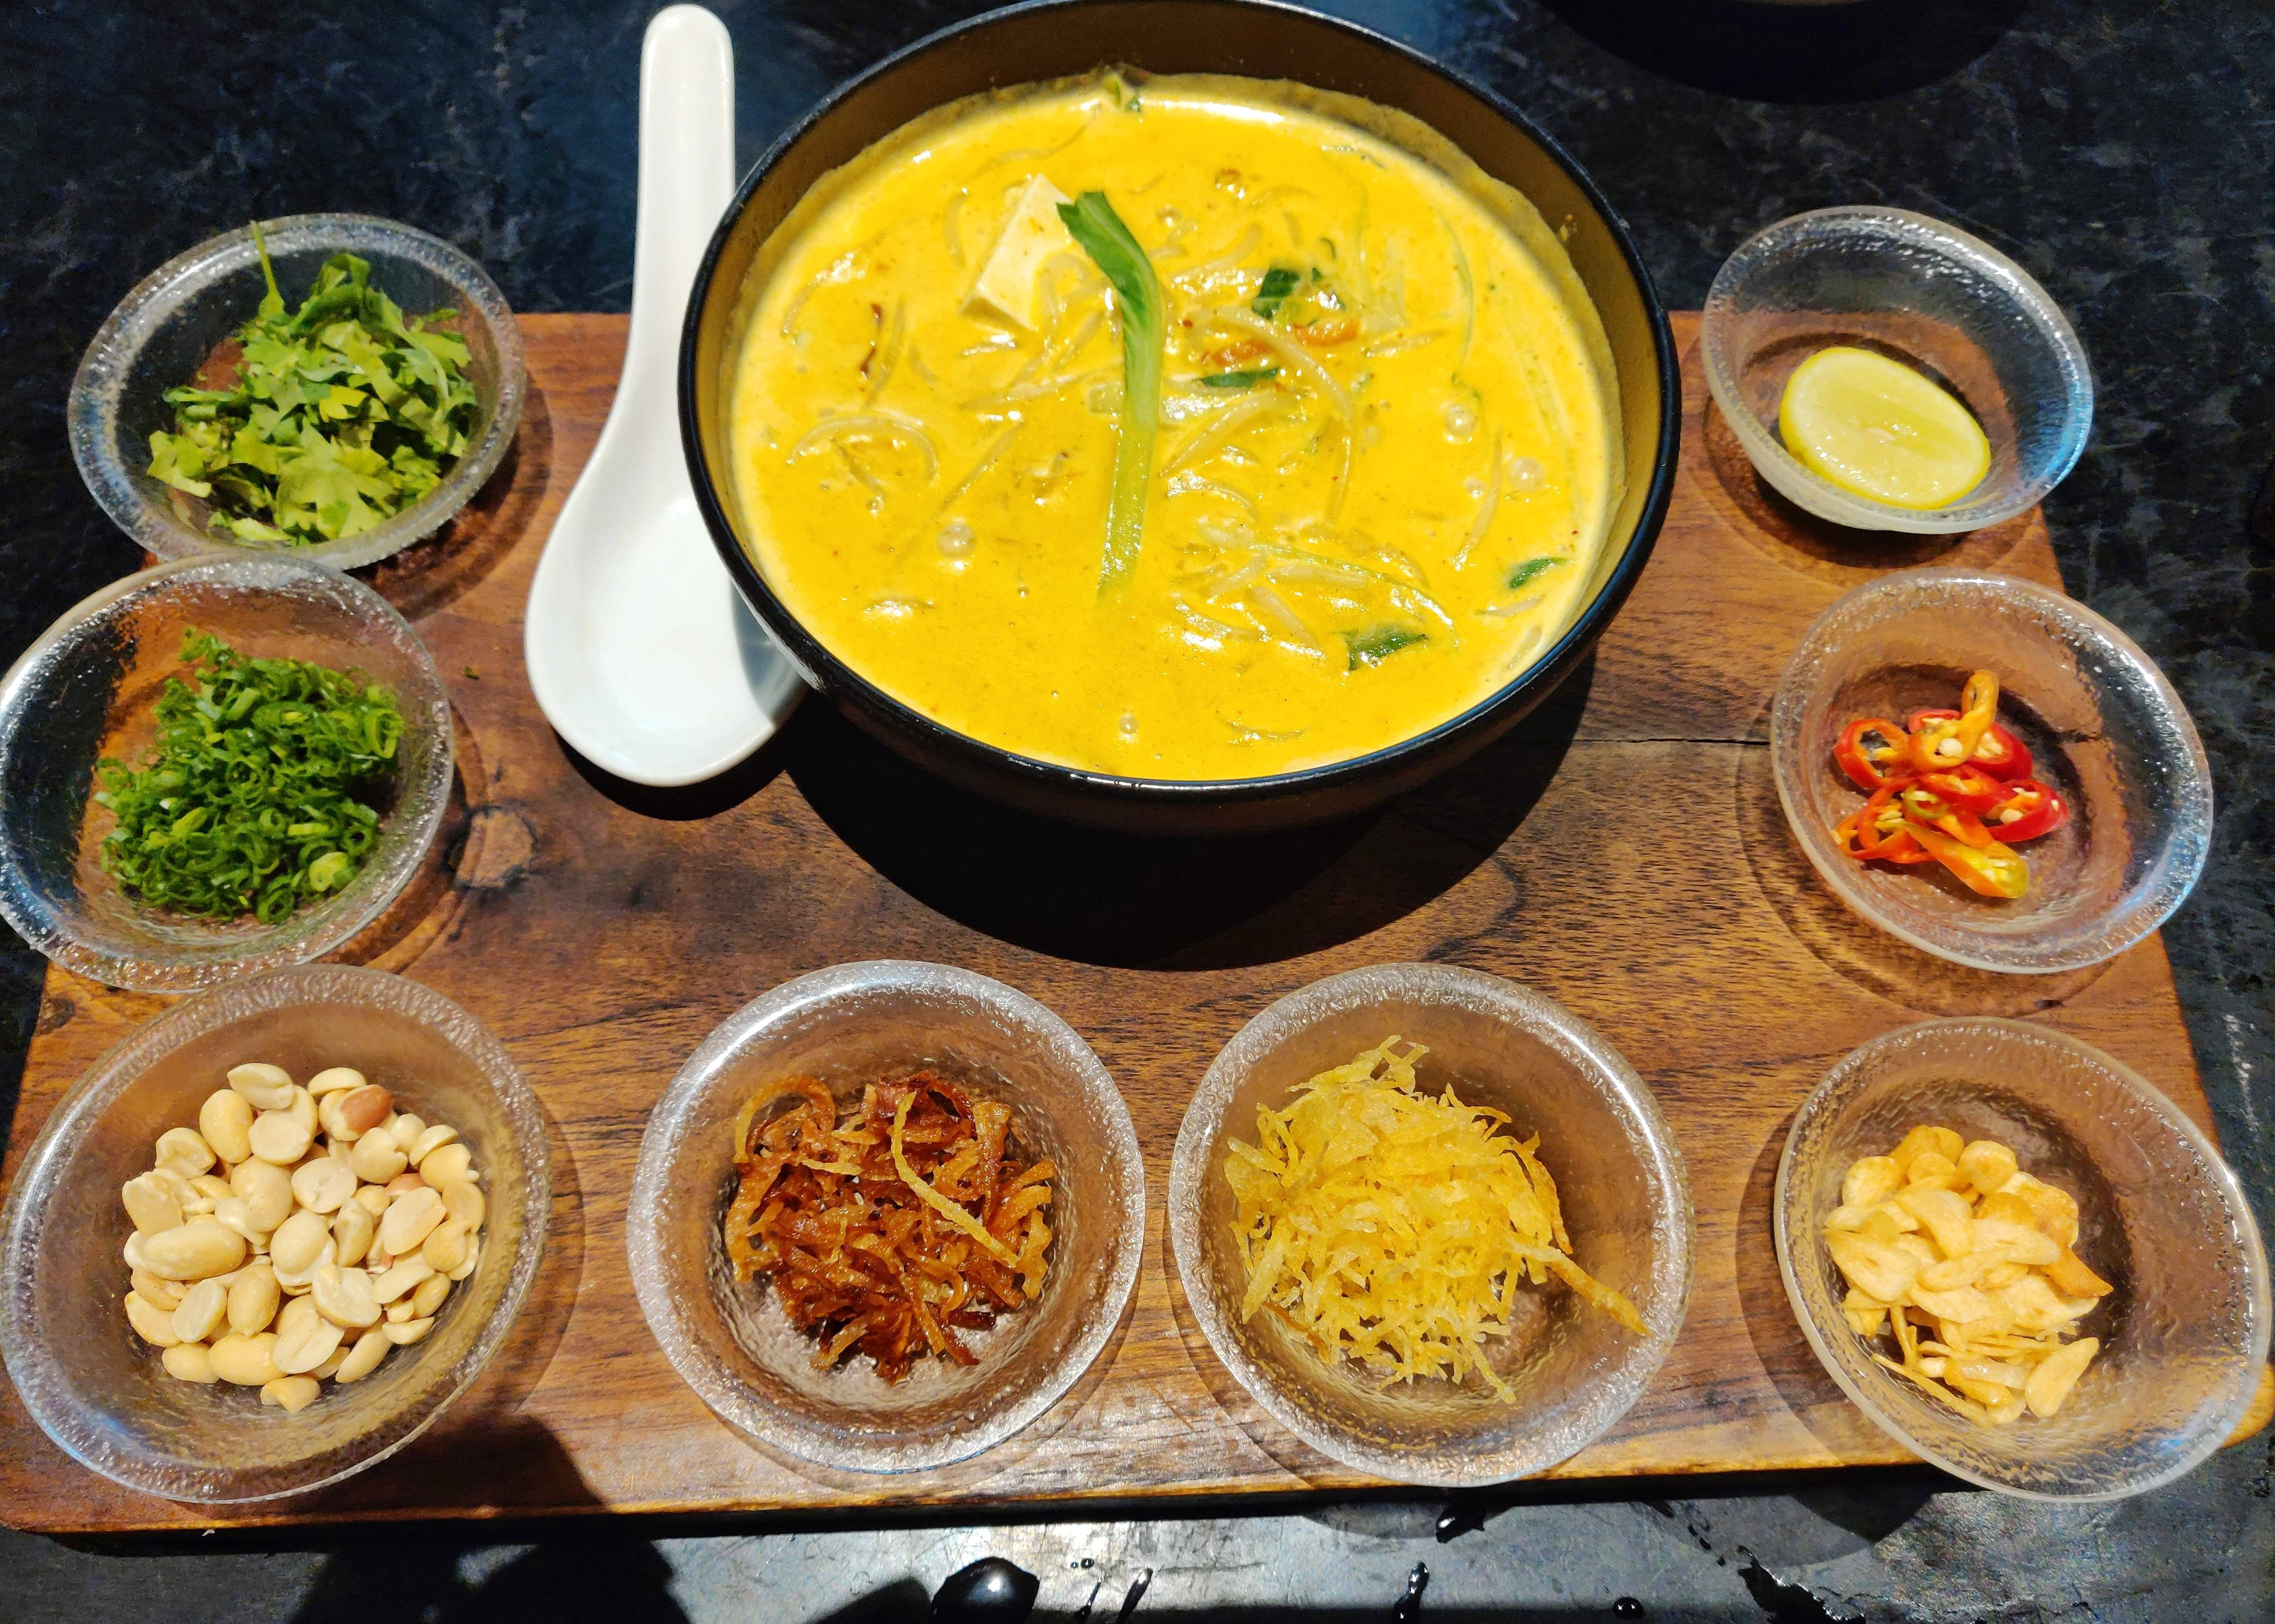 Dish,Food,Cuisine,Meal,Ingredient,Kadhi,Yellow curry,Lunch,Produce,Indian cuisine